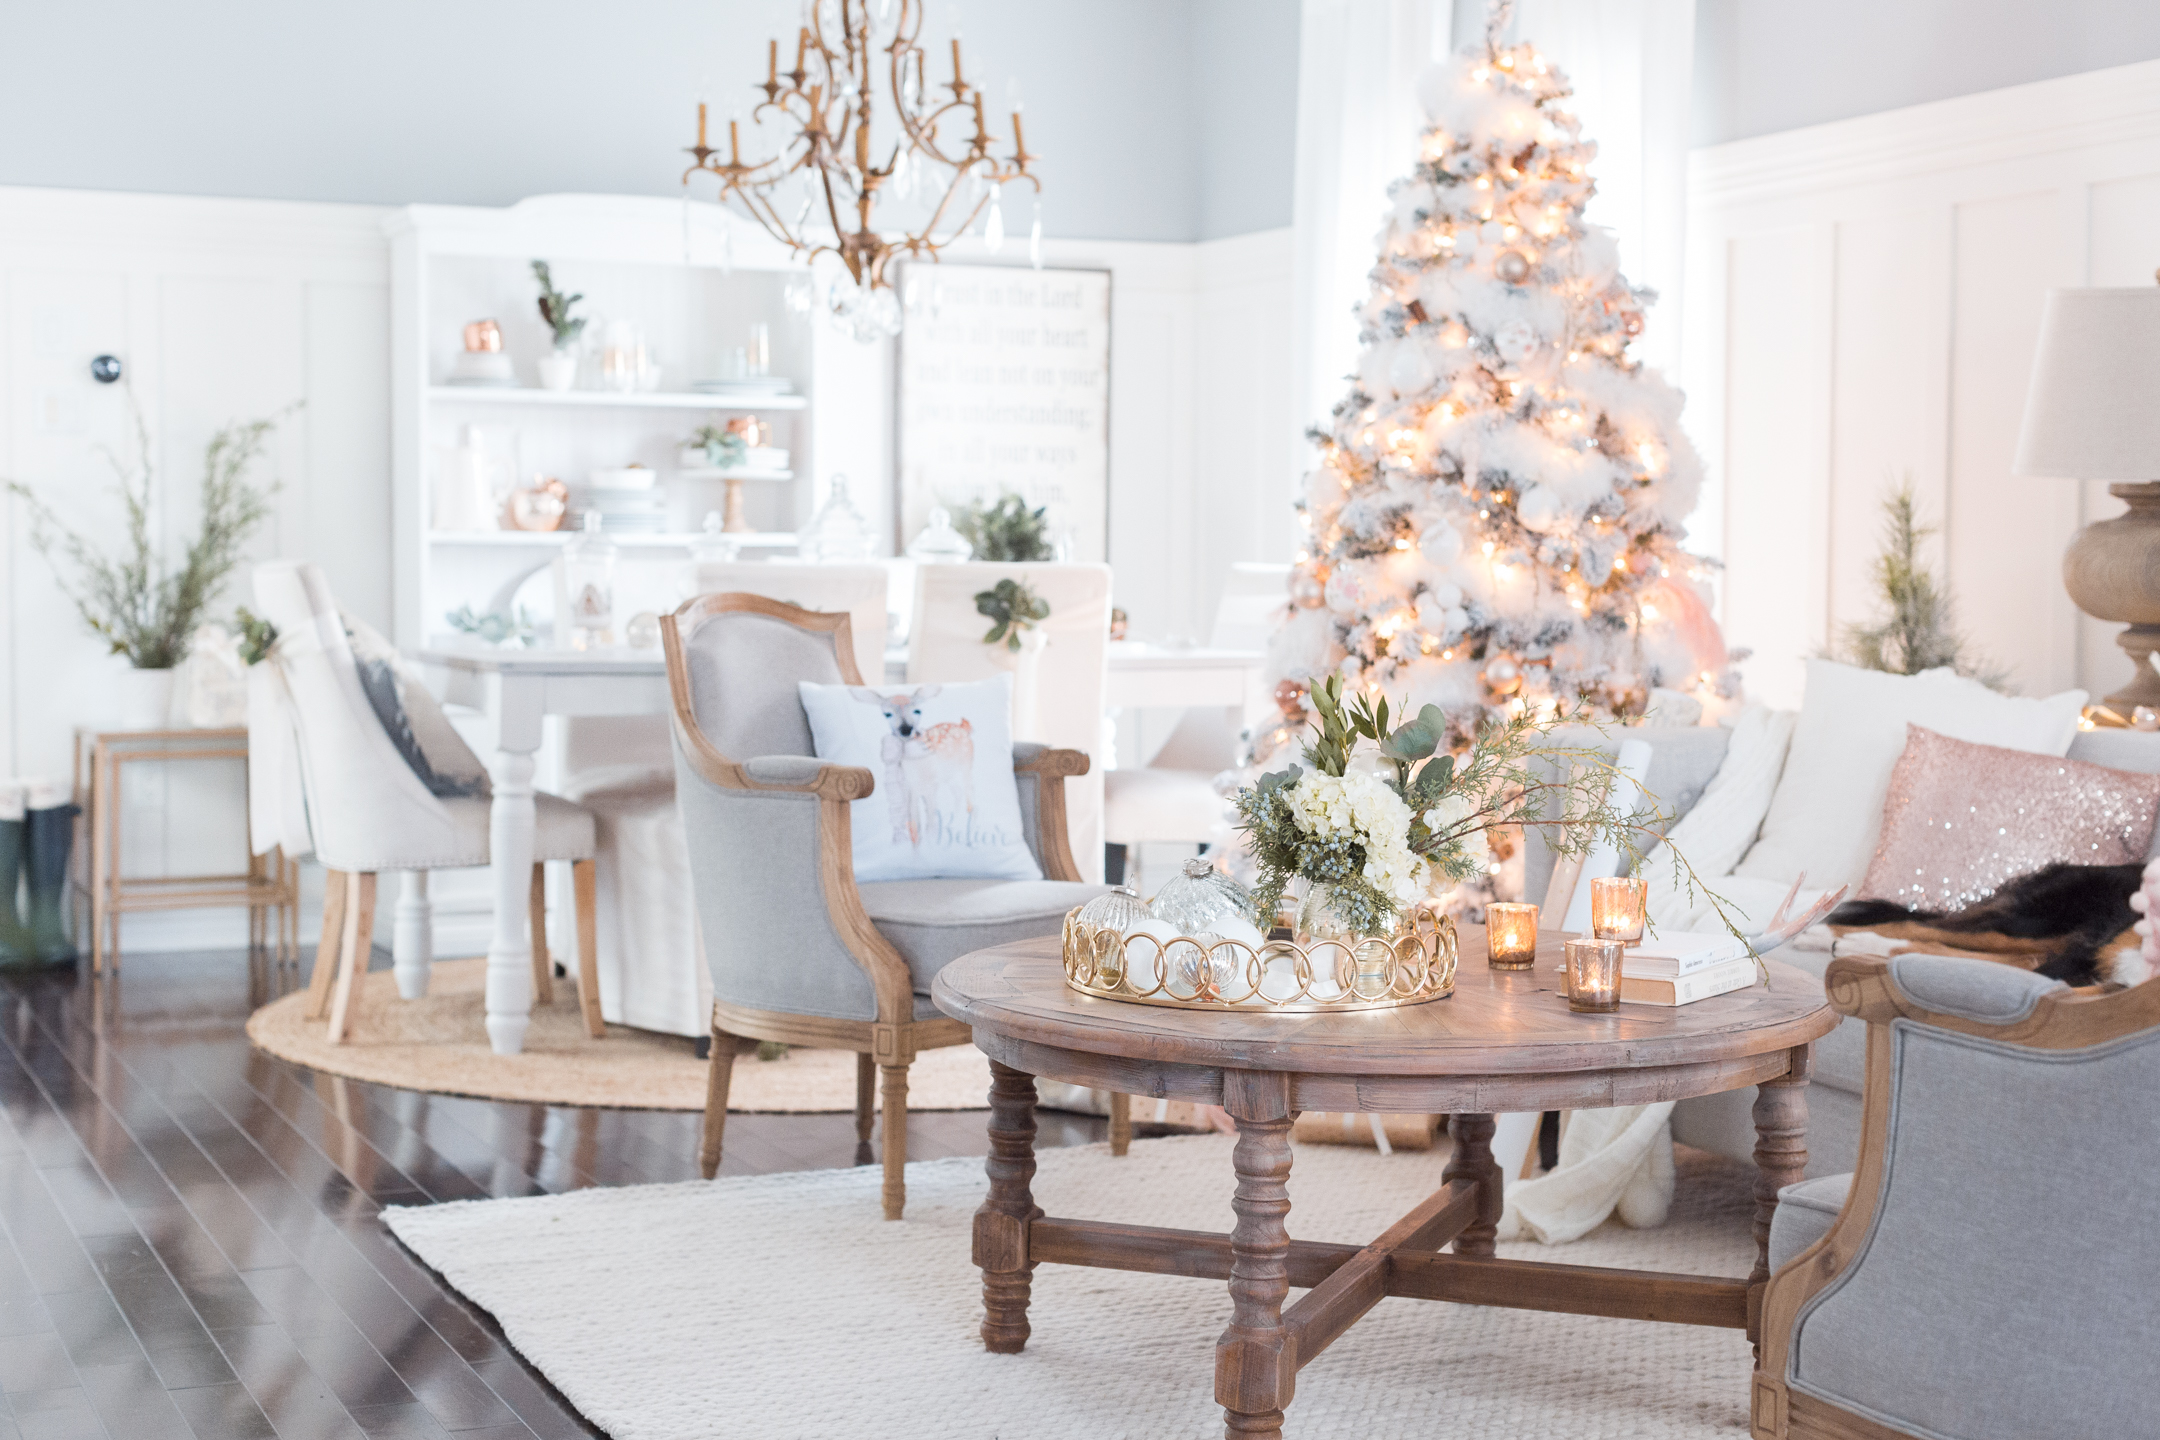 Luxury Christmas Decorations You Should be Using Best Christmas Destinations The World's Best Christmas Destinations Luxury Christmas Decorations You Should be Using 5 Best Christmas Destinations The World's Best Christmas Destinations Luxury Christmas Decorations You Should be Using 5